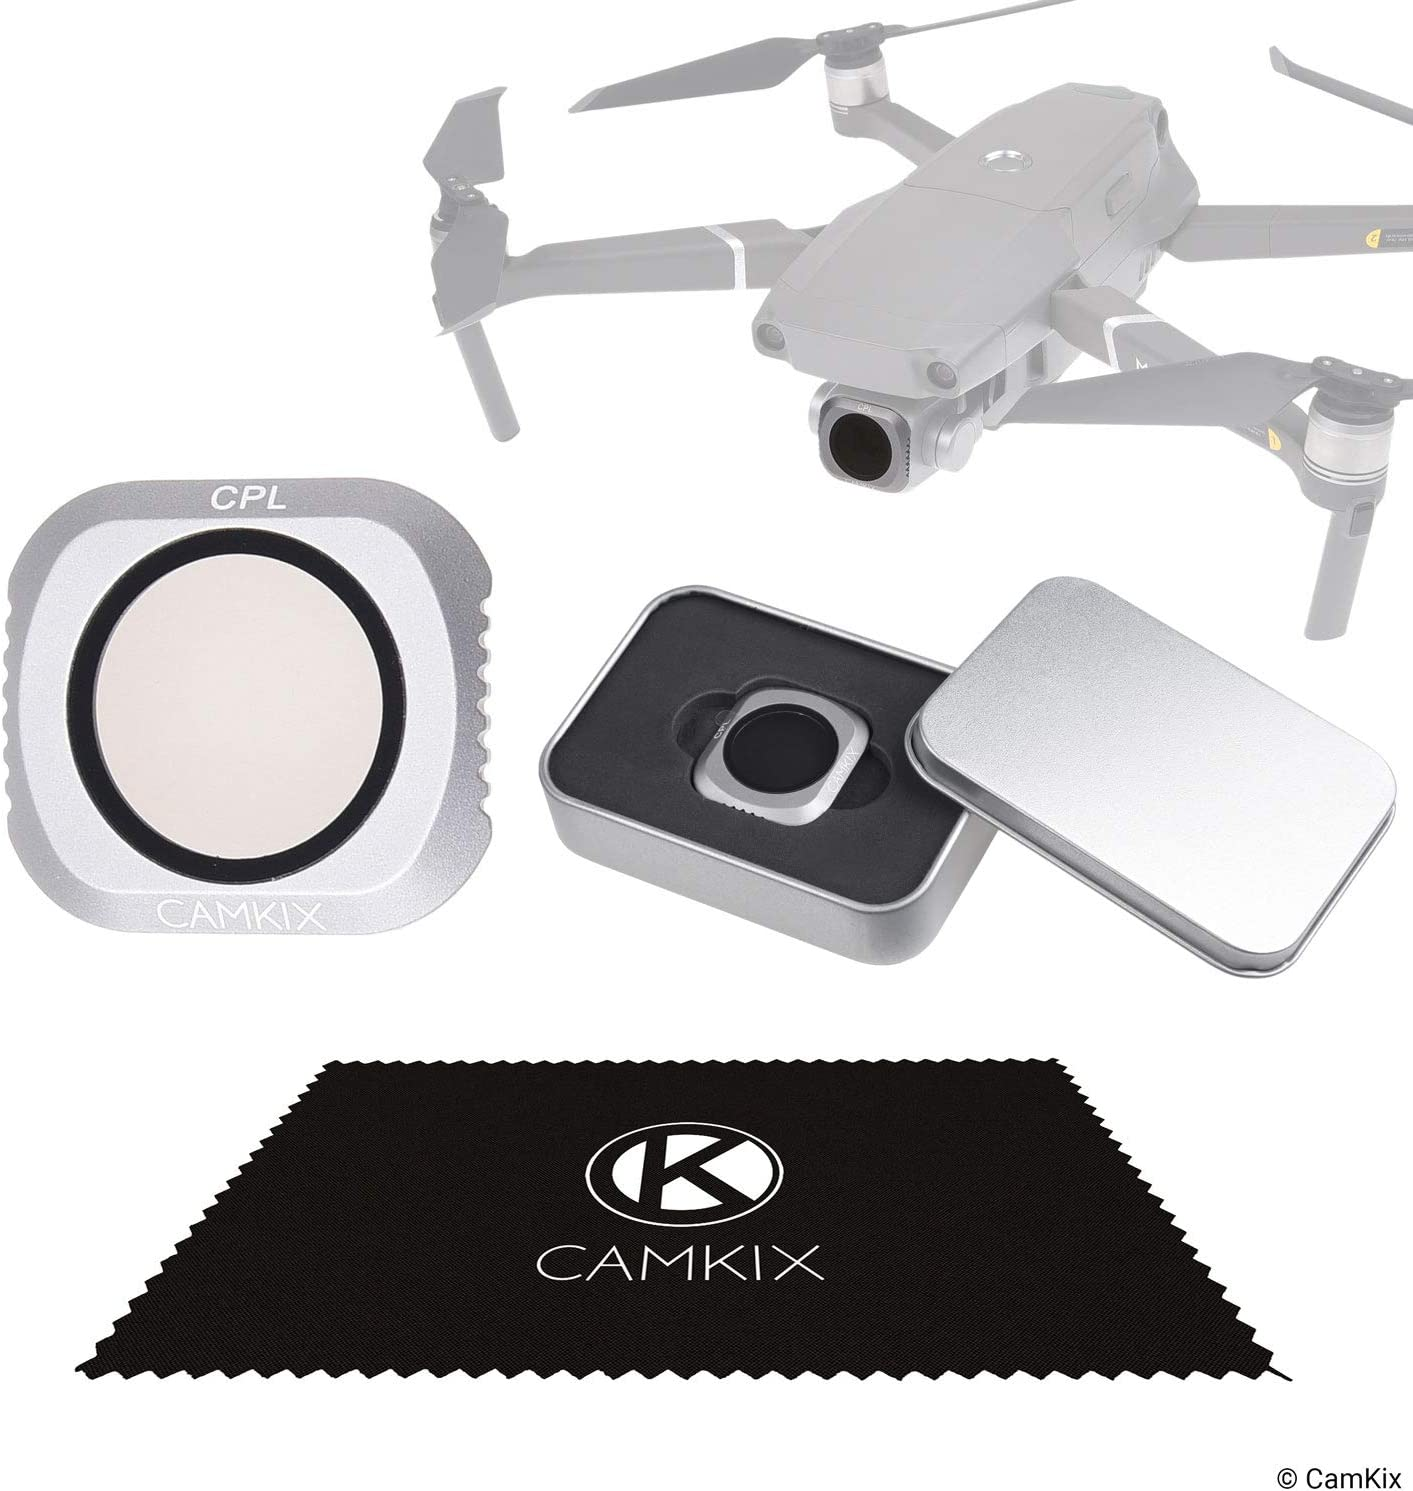 Prevents Reflections in Water//Glass Deeper Color Tones CamKix PL Filter Compatible with DJI Mavic Pro//Platinum a Filter Storage Container and a CamKix Cleaning Cloth PL Polarizing Filter